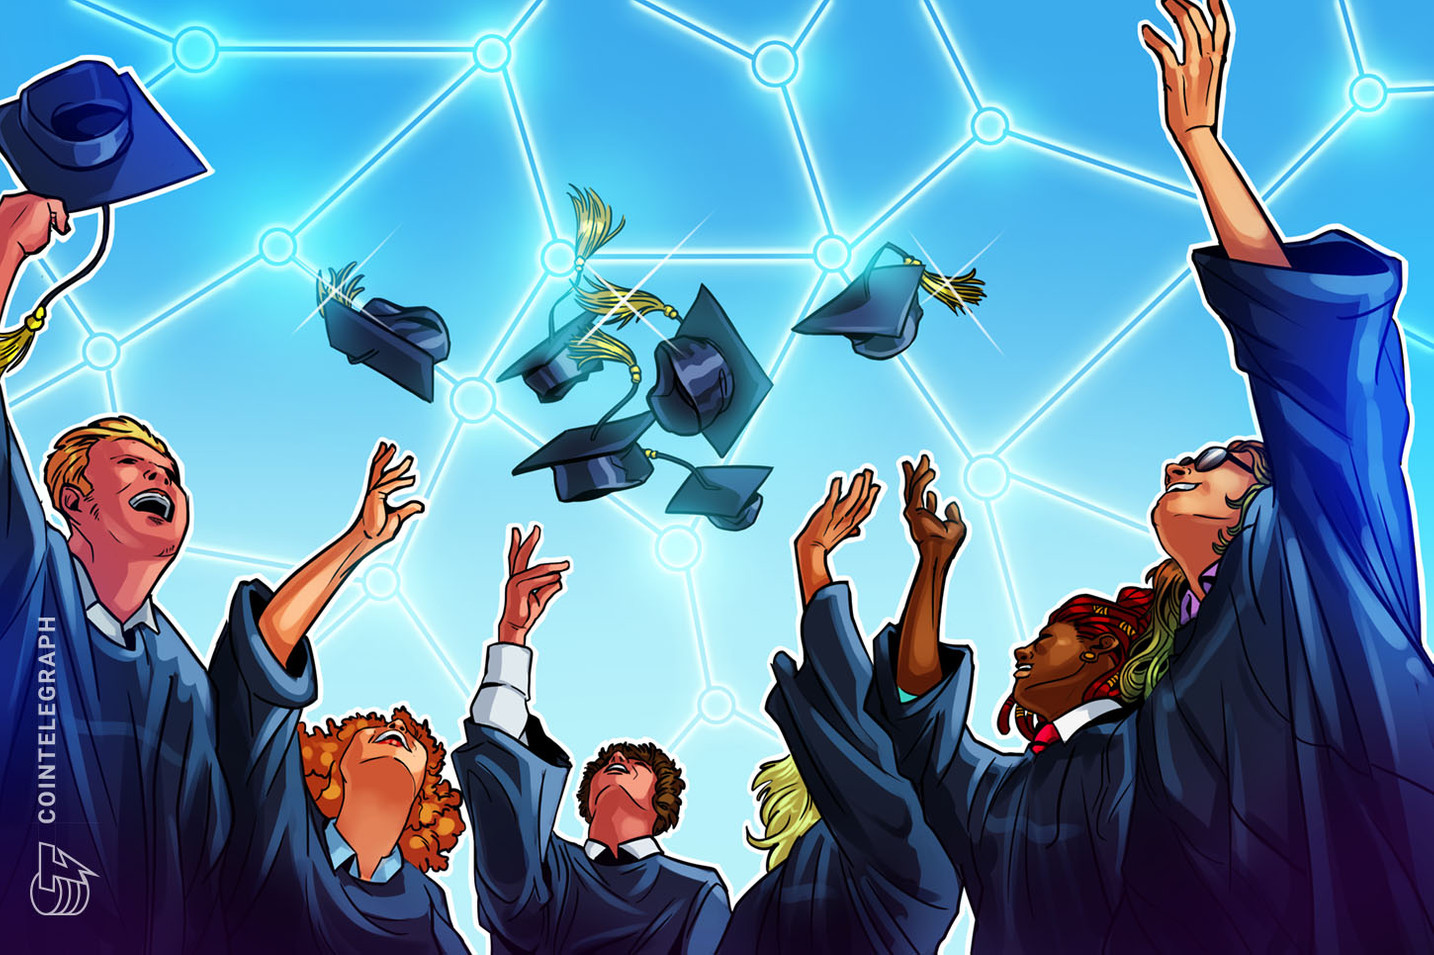 Brazilian Ministry of Education Proposes Issuing Diplomas on the Blockchain